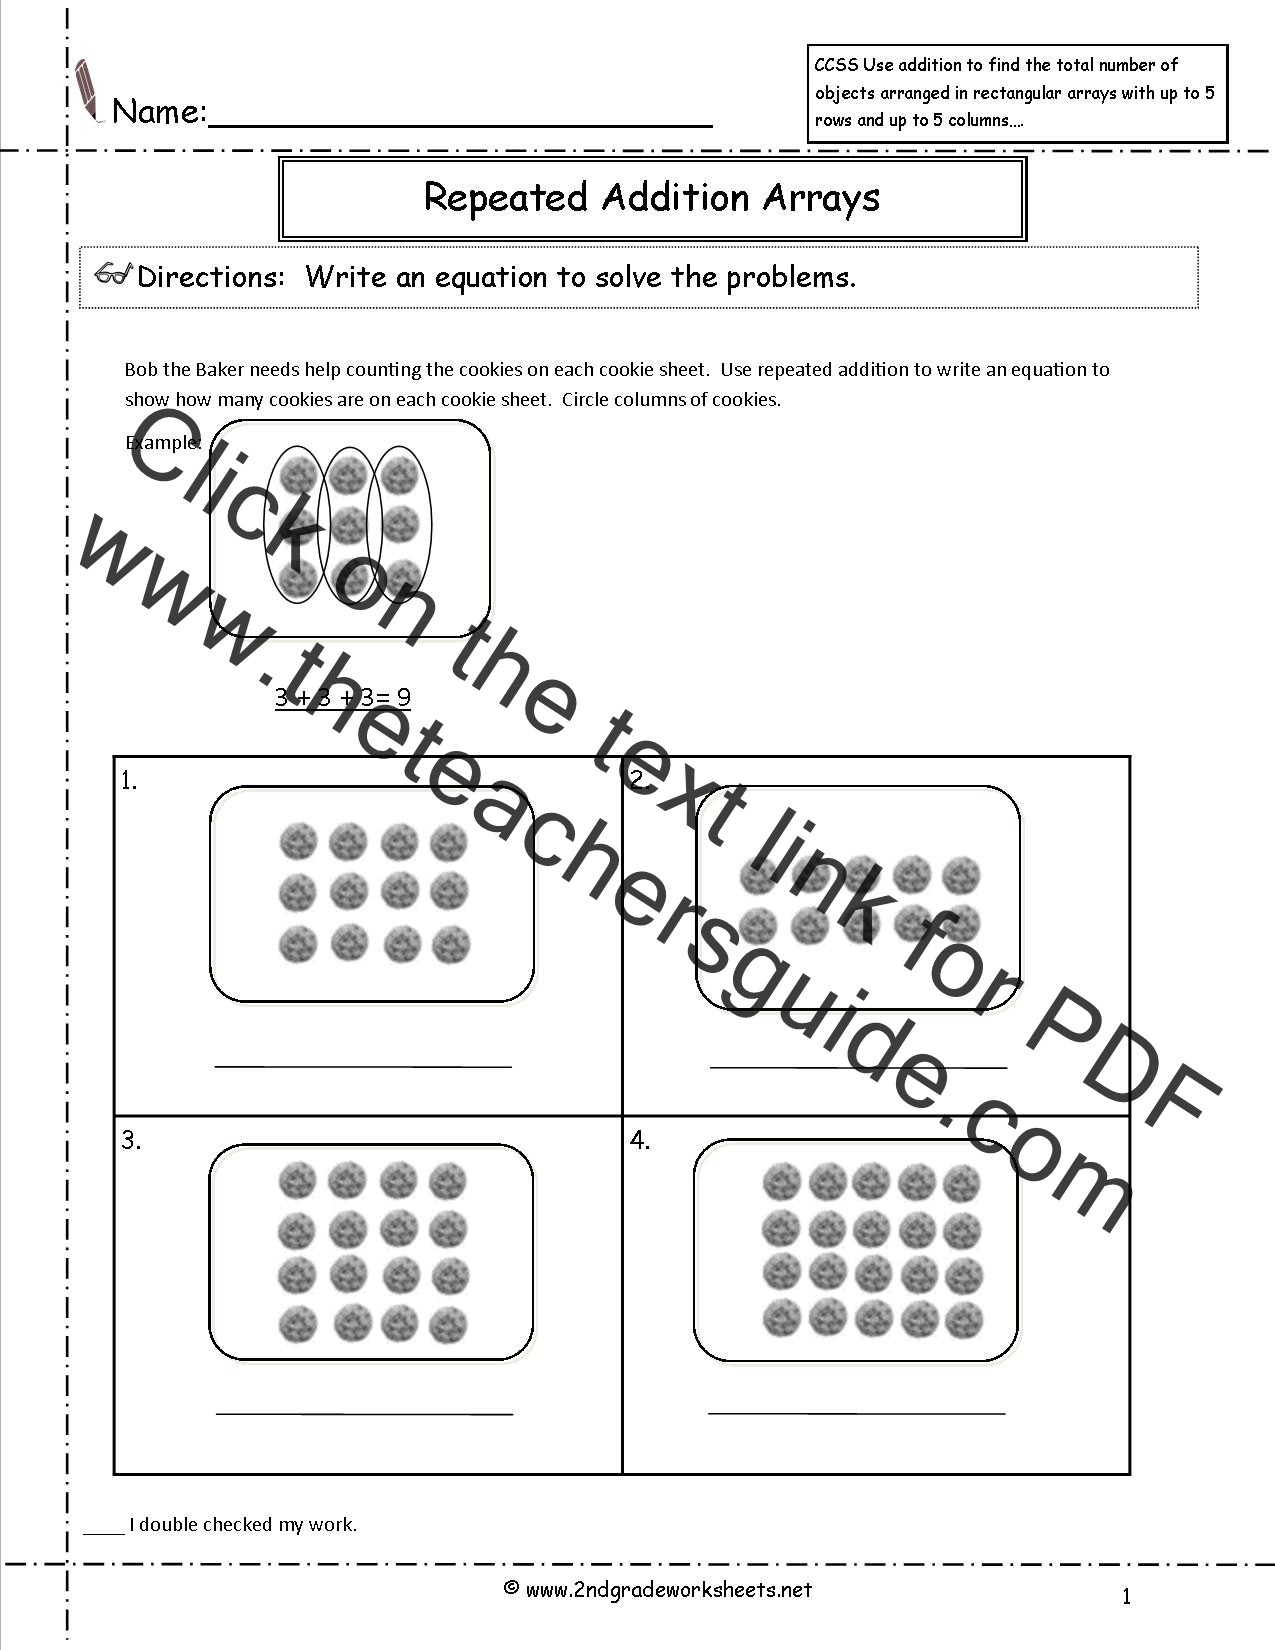 Array Worksheets for 2nd Graders Ccss 2 Oa 4 Worksheets